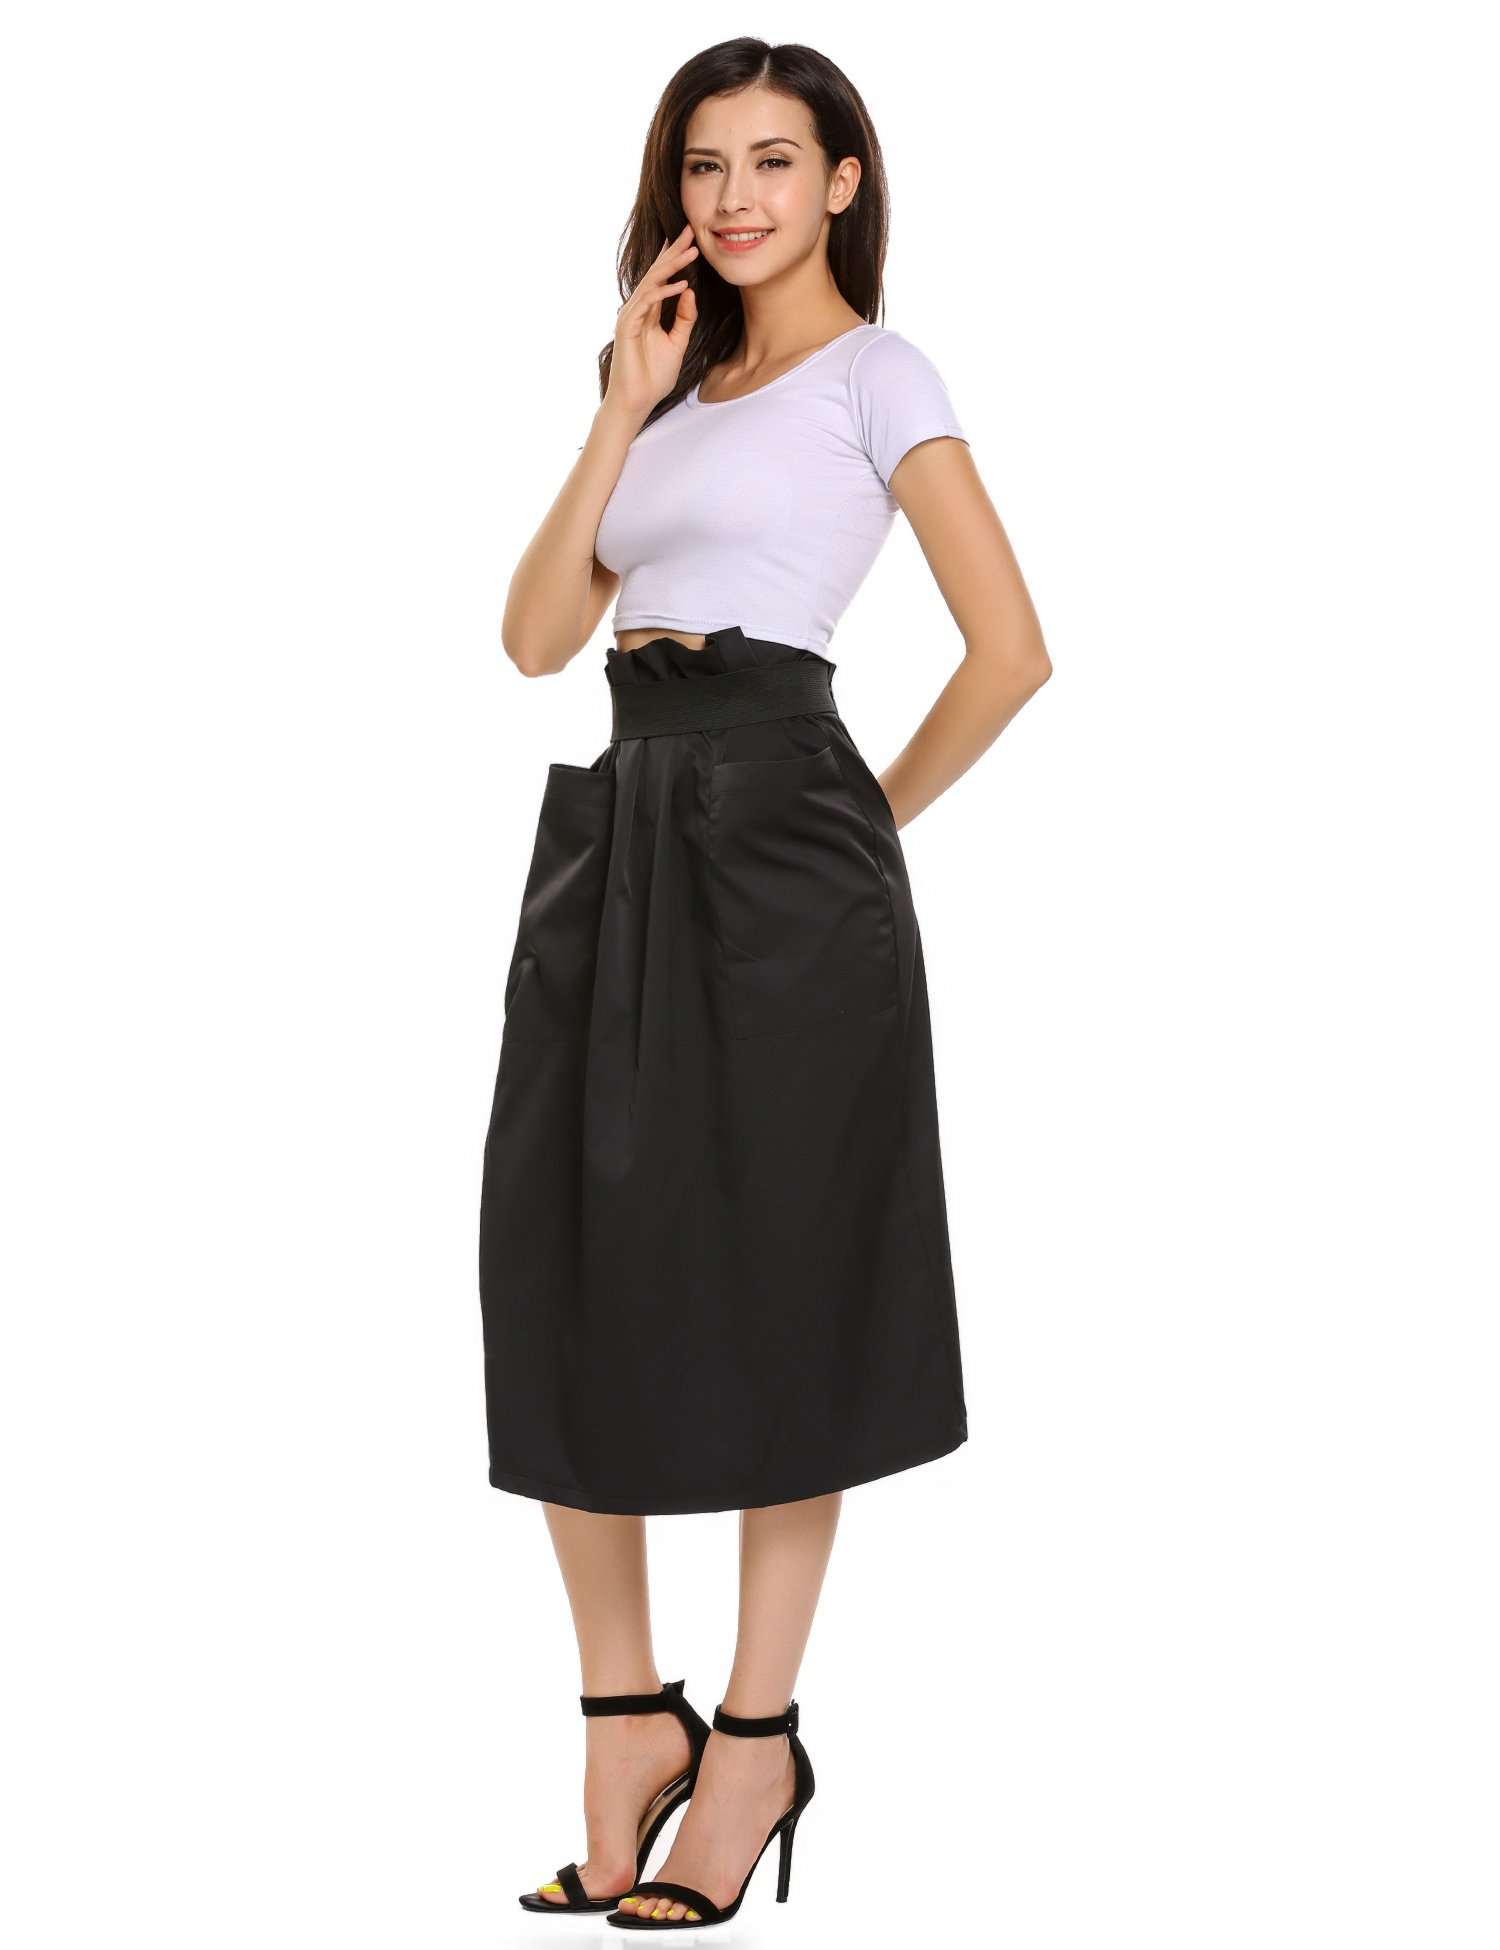 Women Casual High Waisted African A Line Maxi Long Skirt Black Small by Zeagoo (Image #4)